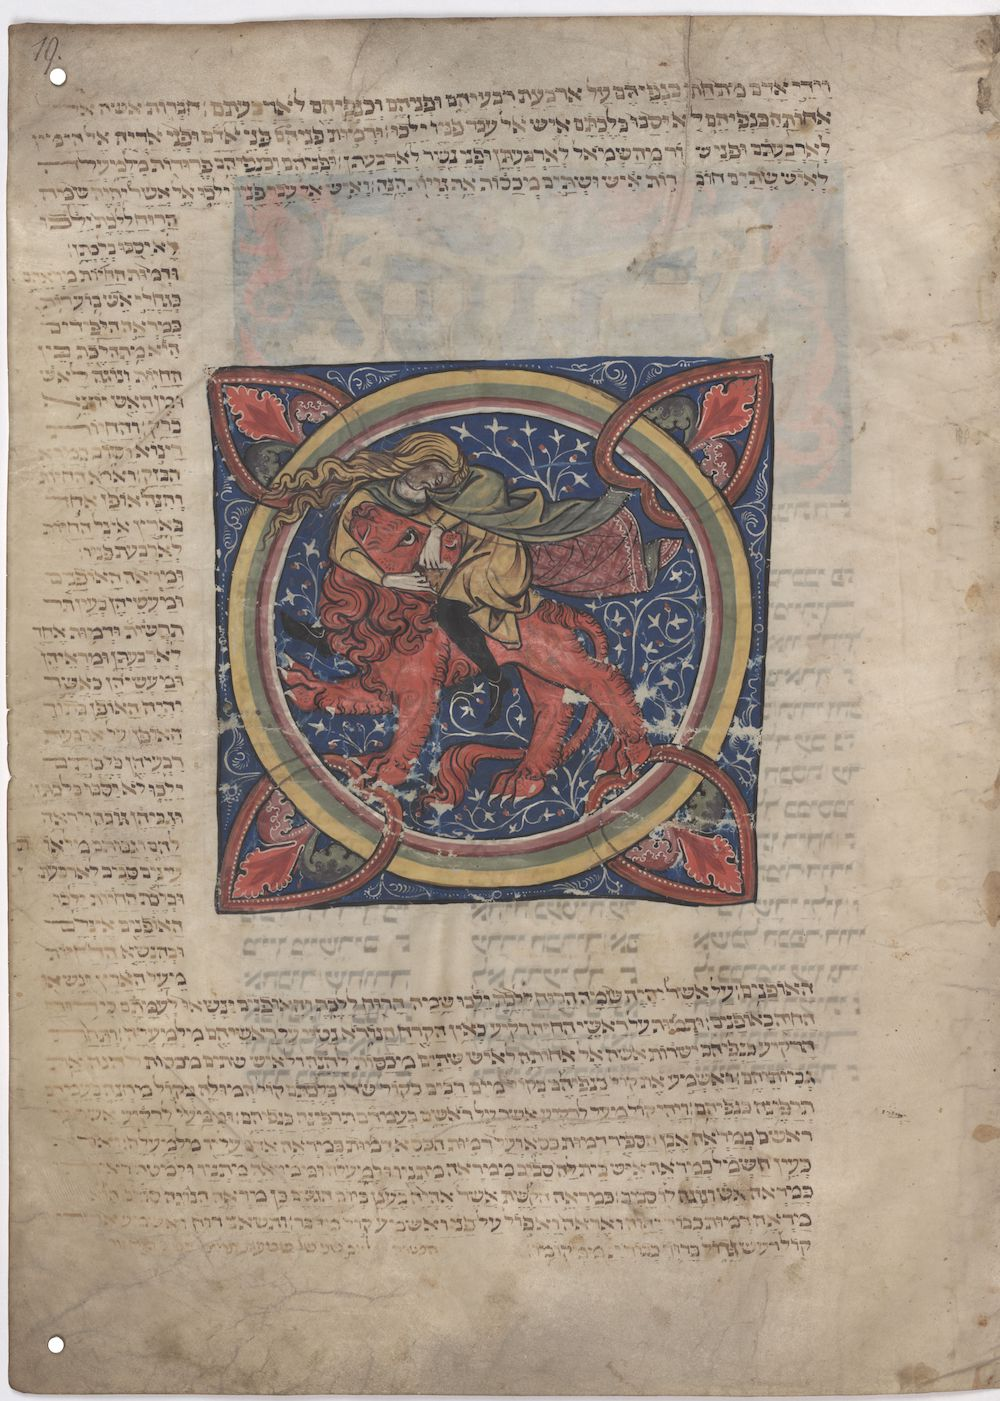 Manuscript page from a medieval Jewish text with an image of Samson wrestling a lion.